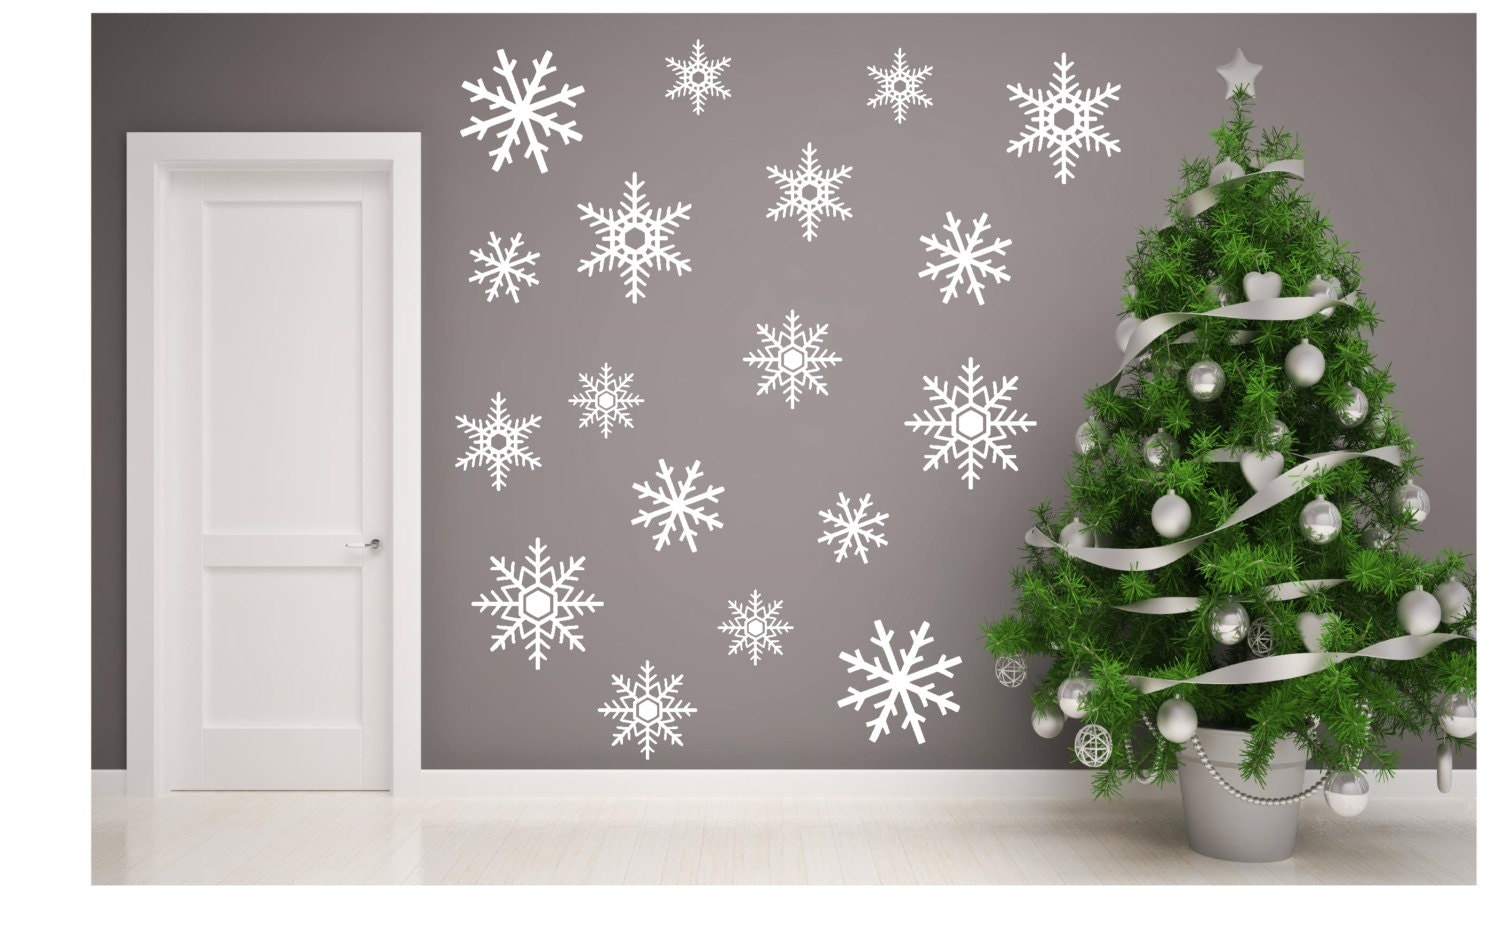 snowflakes wall decals christmas wall decal winter by ammdecals. Black Bedroom Furniture Sets. Home Design Ideas